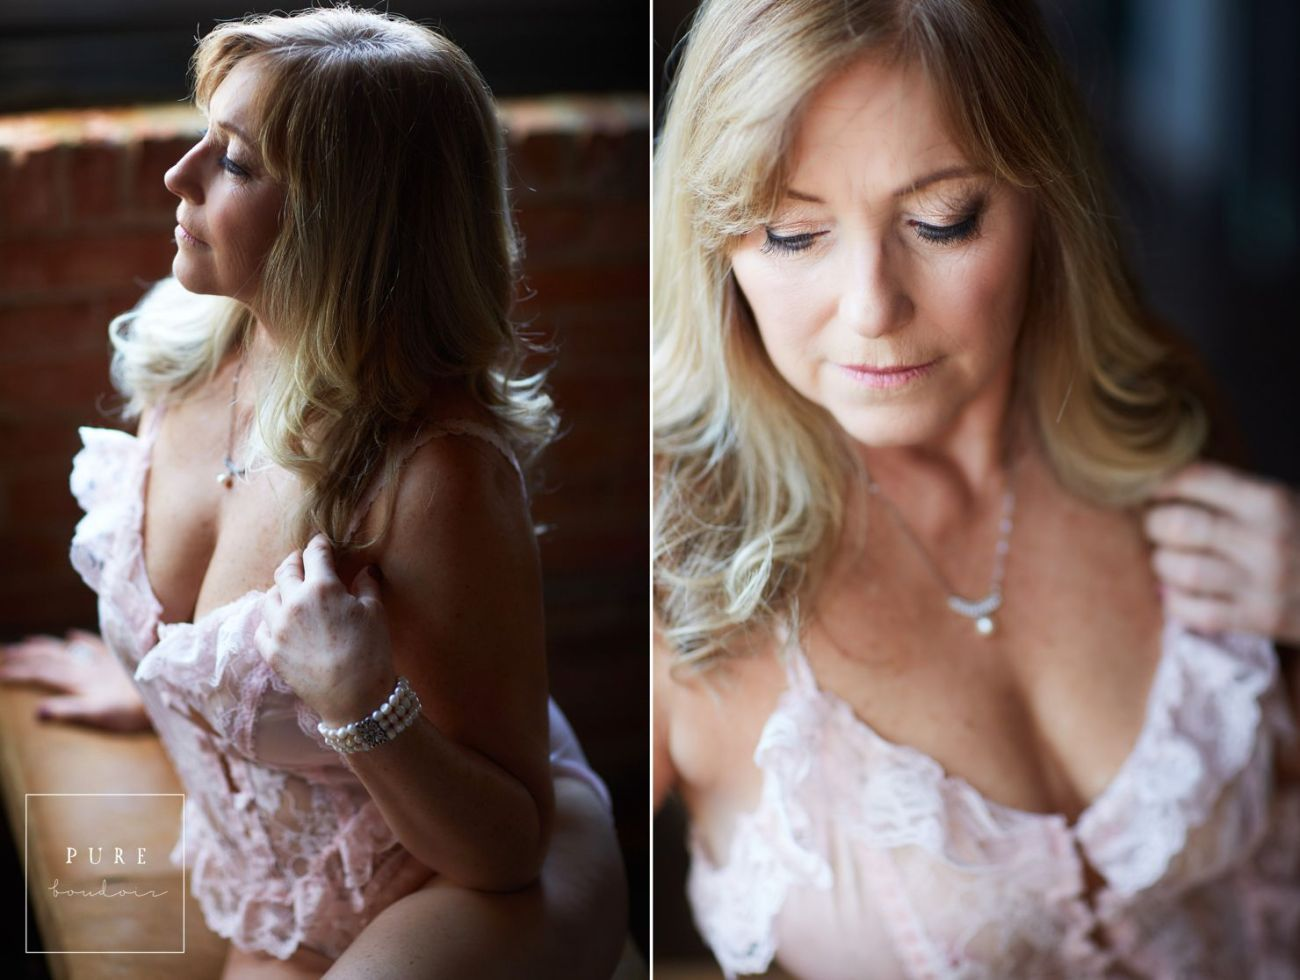 chicago natural light portrait photography - Middle Age Boudoir Session - Beautiful At Any Age.